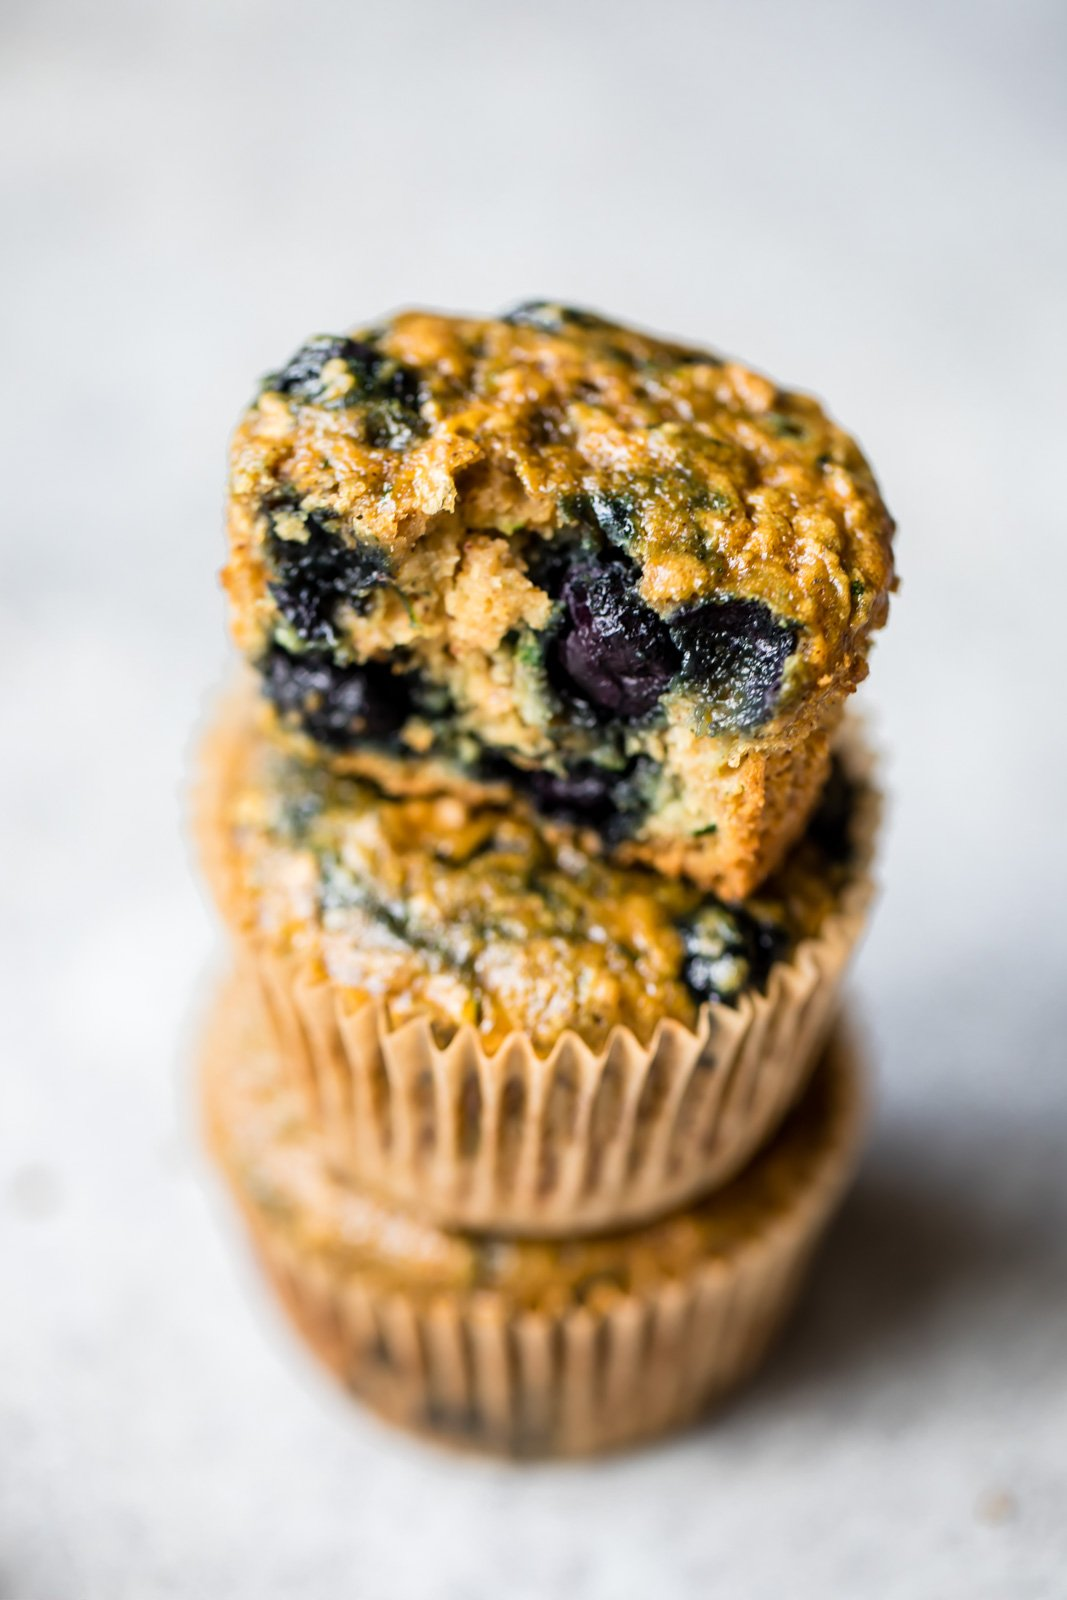 Healthy blueberry zucchini muffins made extra moist thanks to zucchini and applesauce! Naturally sweetened with pure maple syrup instead of sugar. Great for snacking & freezer-friendly too!